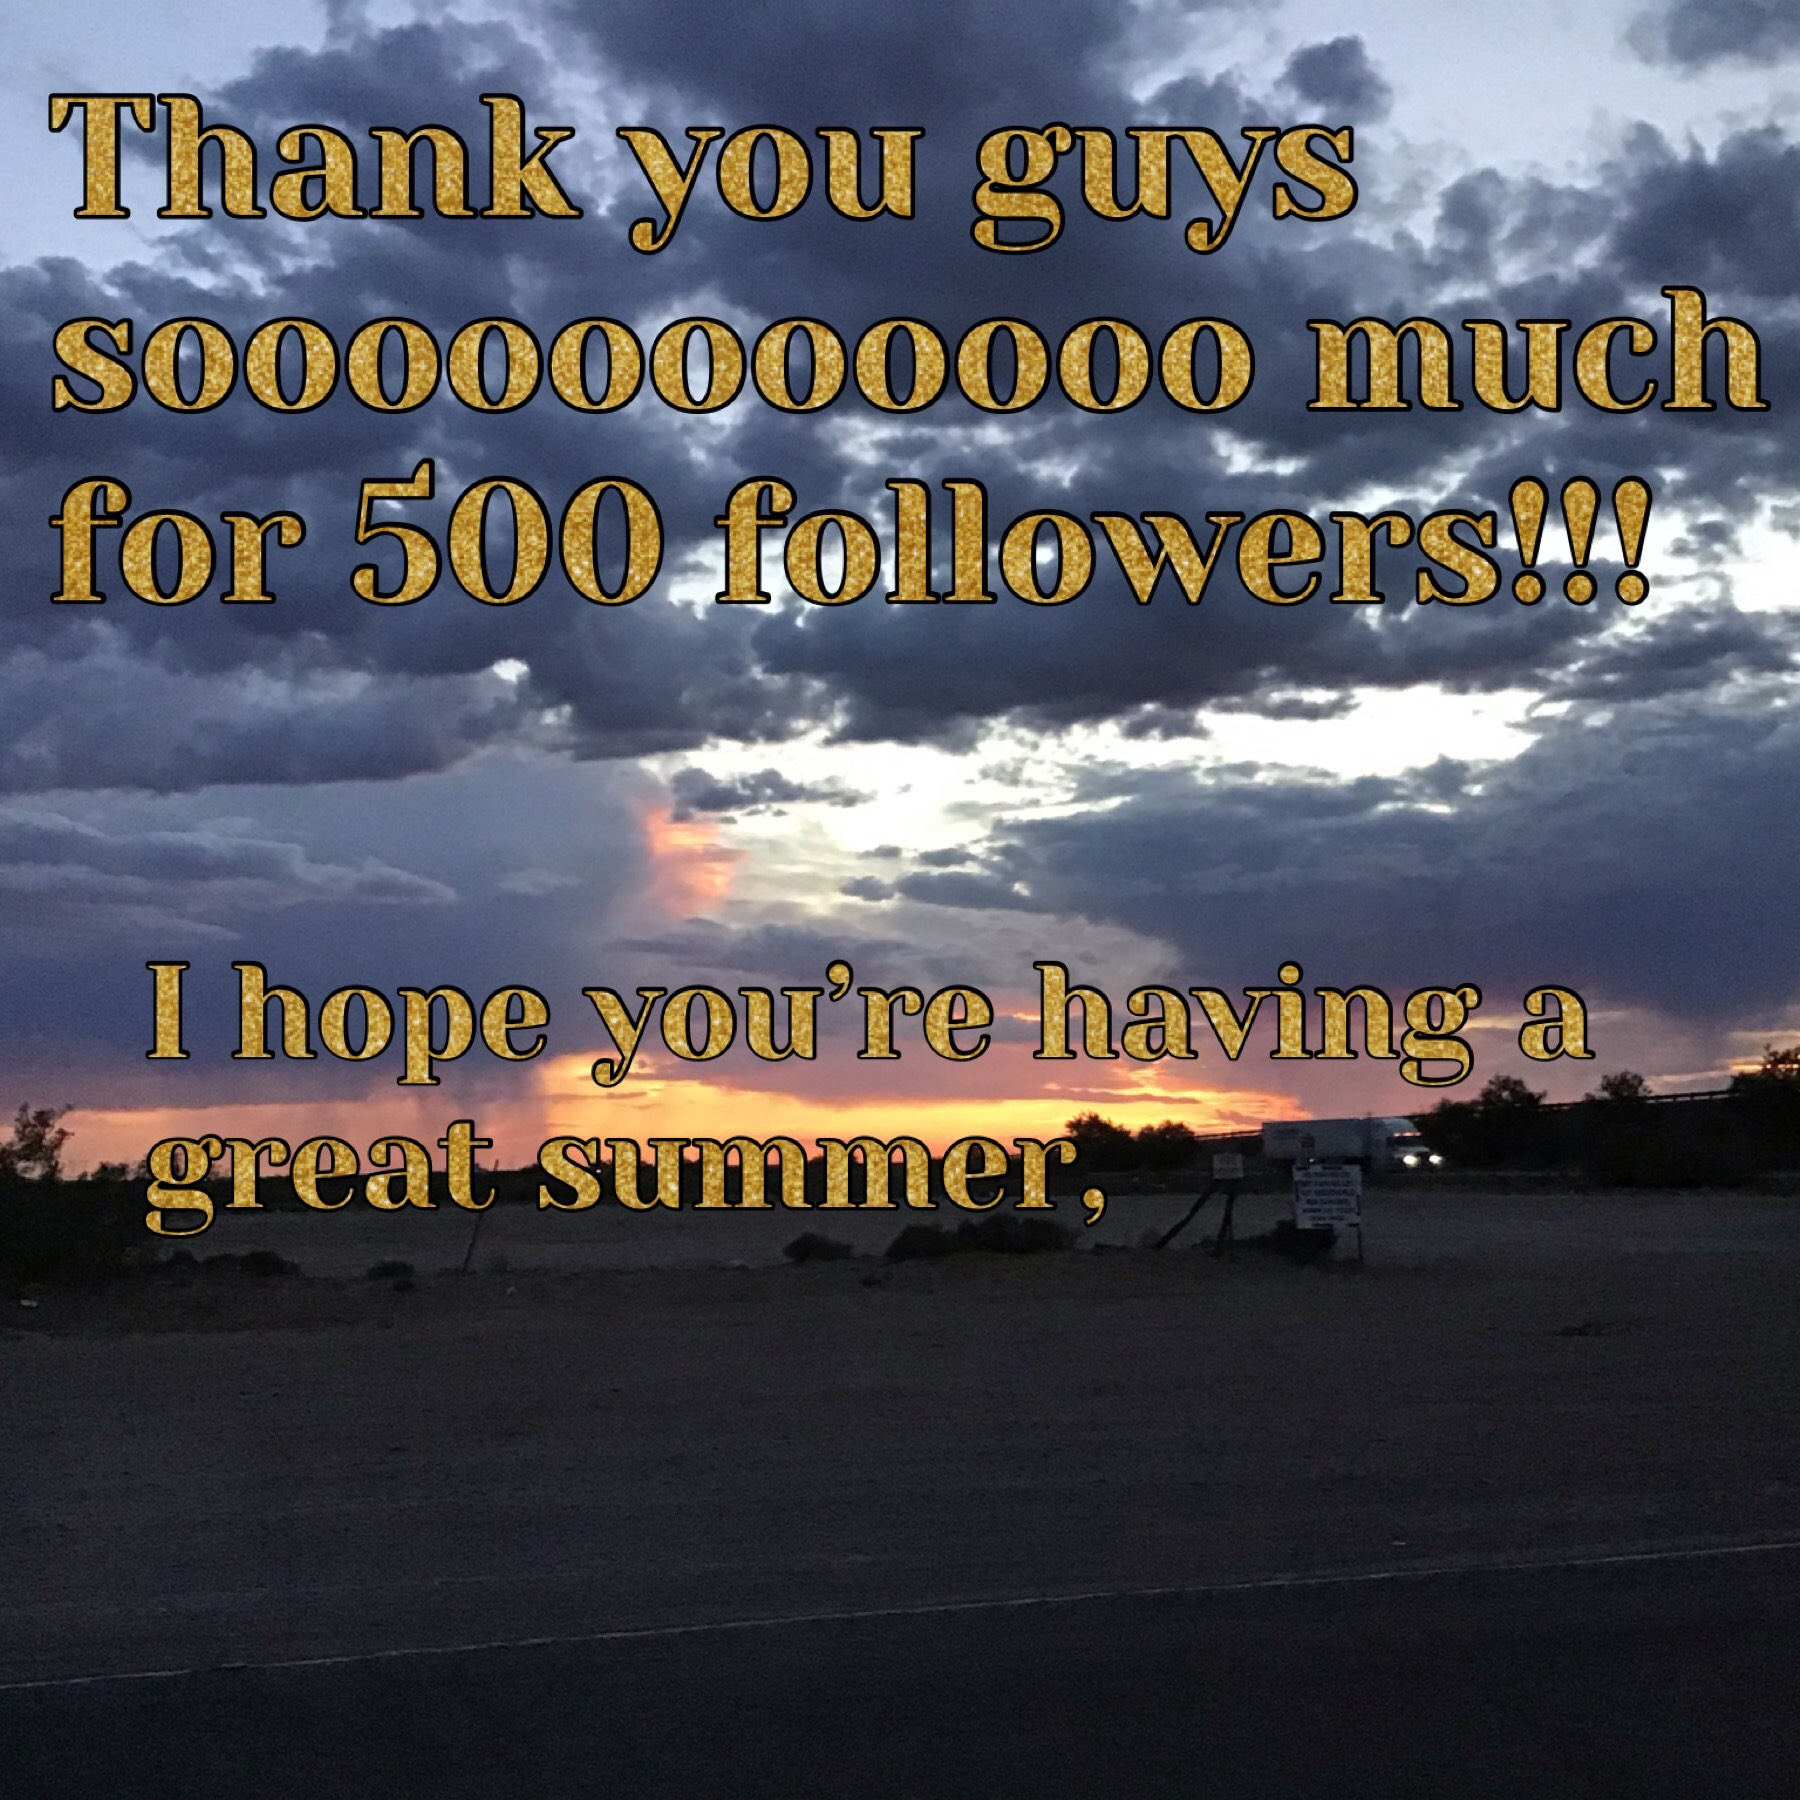 Thank you soo much